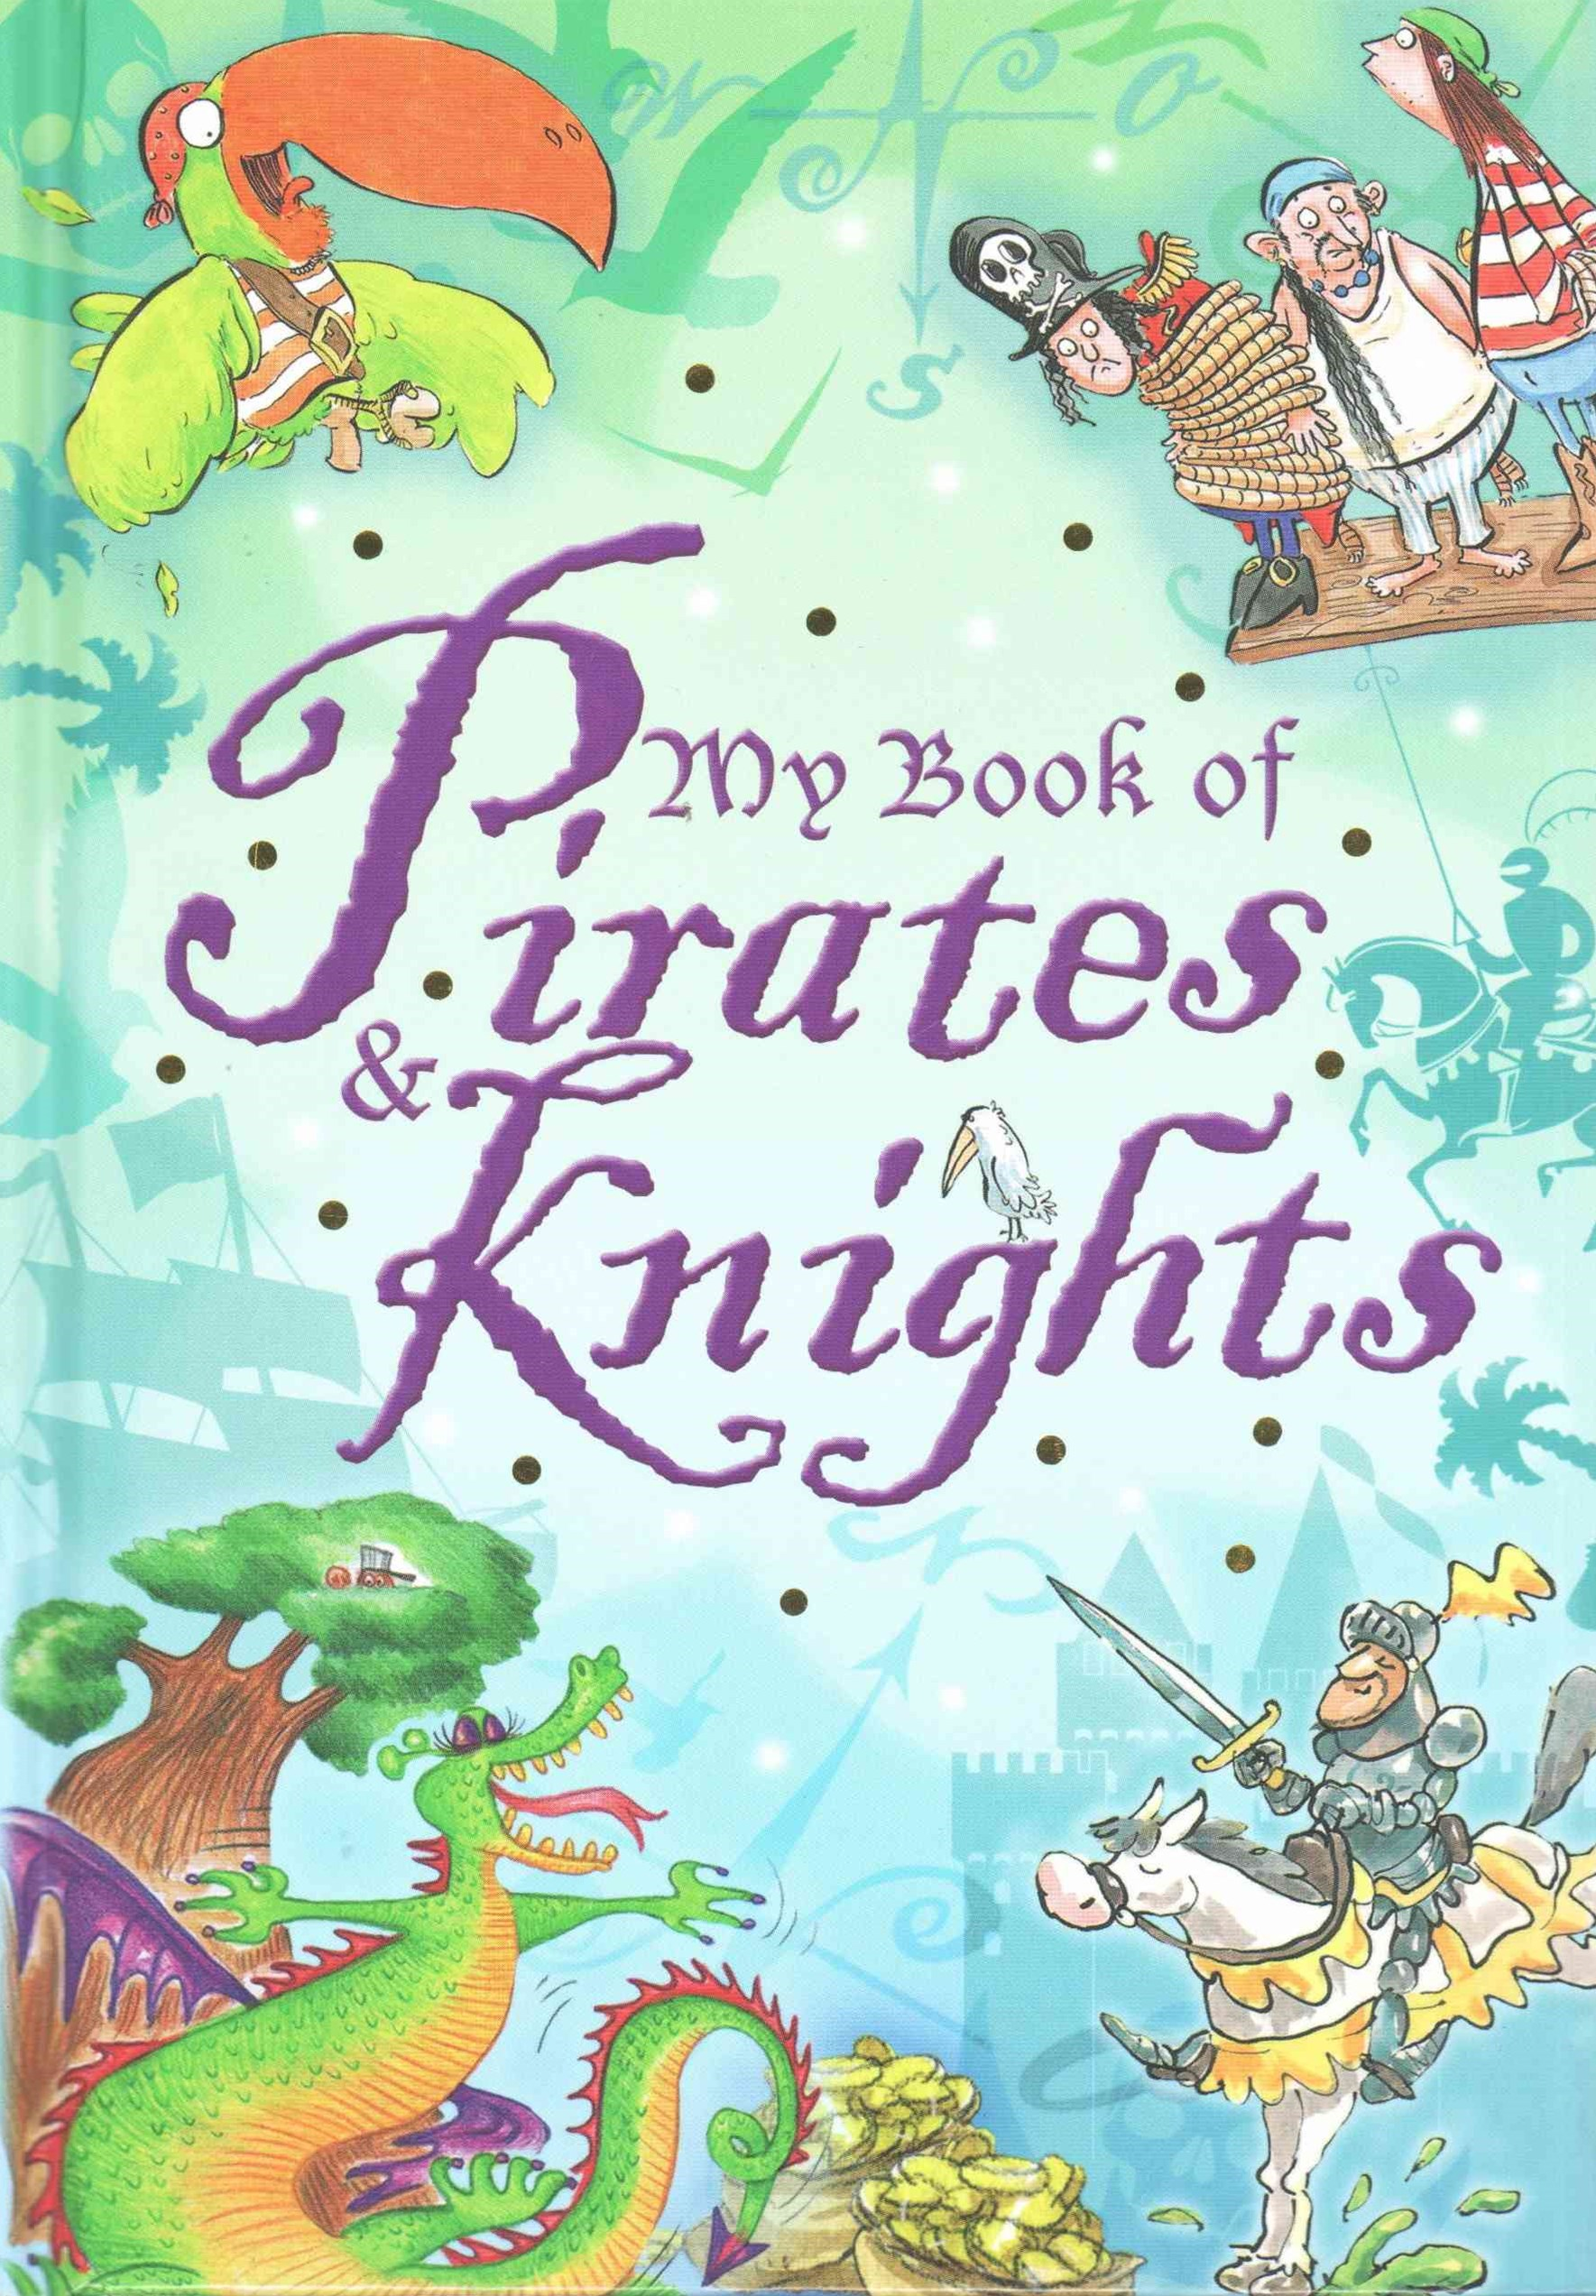 My book of: Pirates and Knights